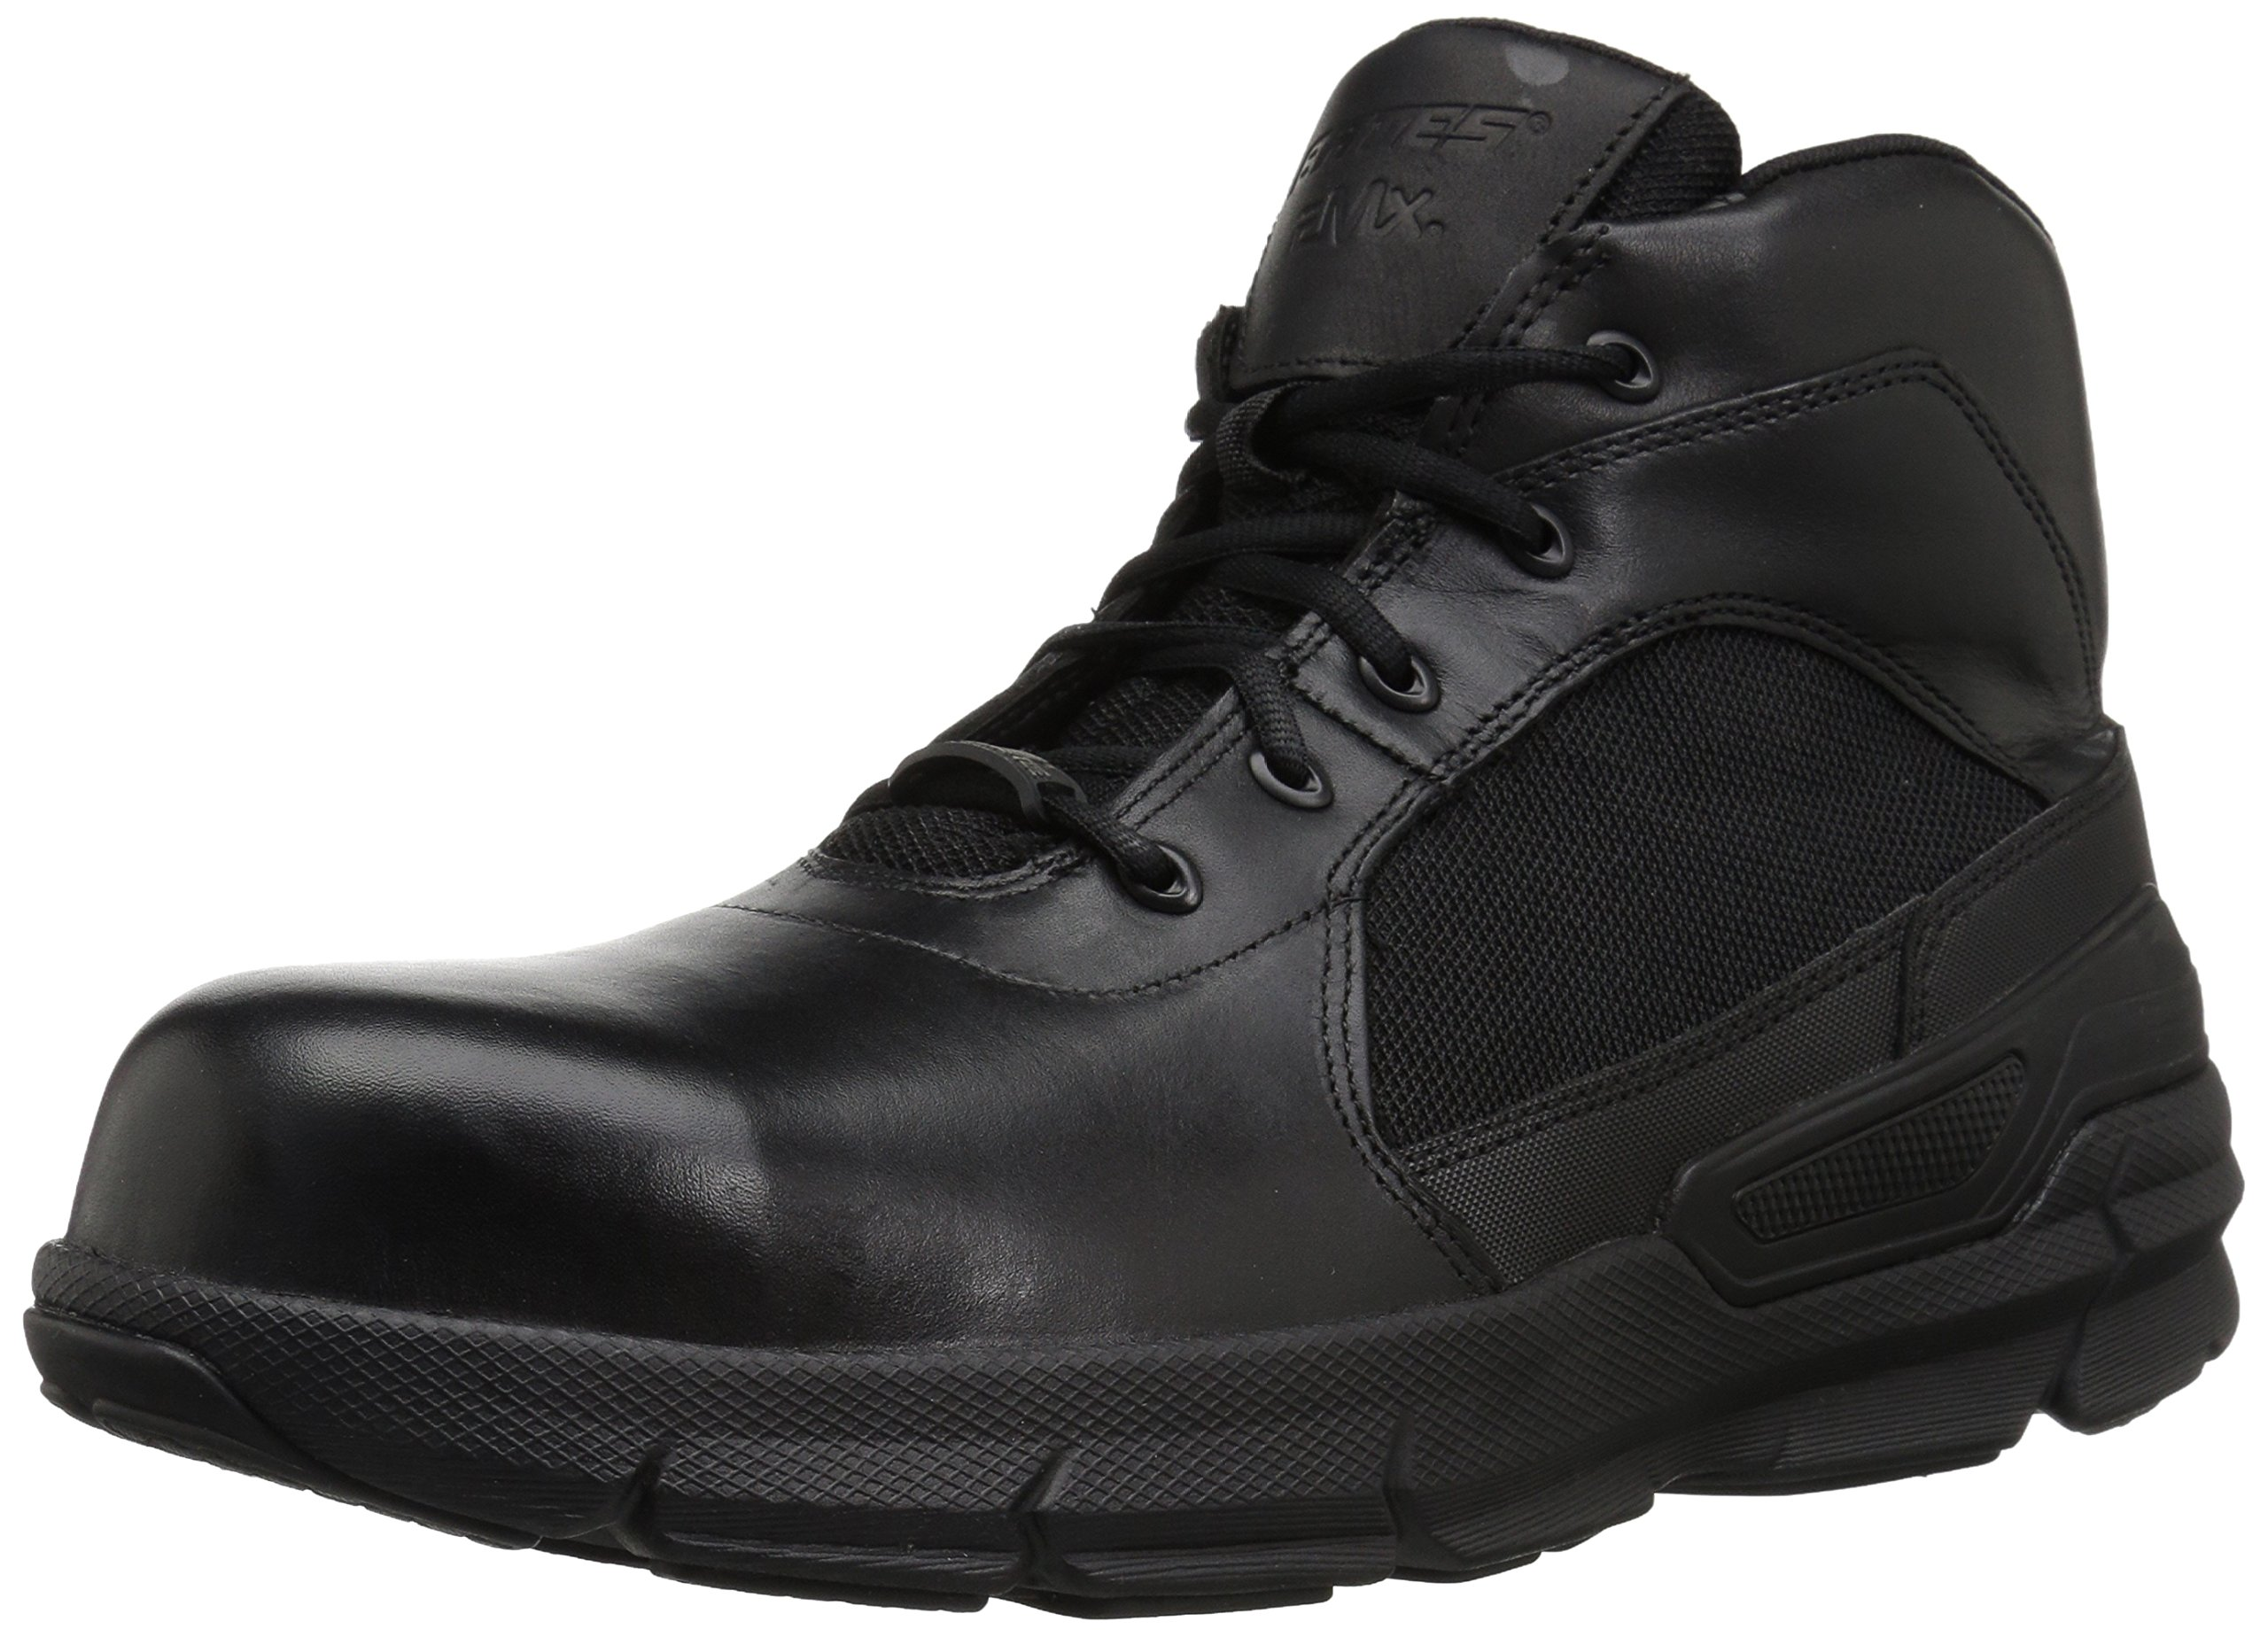 Bates Men's Charge-6 Composite Toe Side Zip Military and Tactical Boot